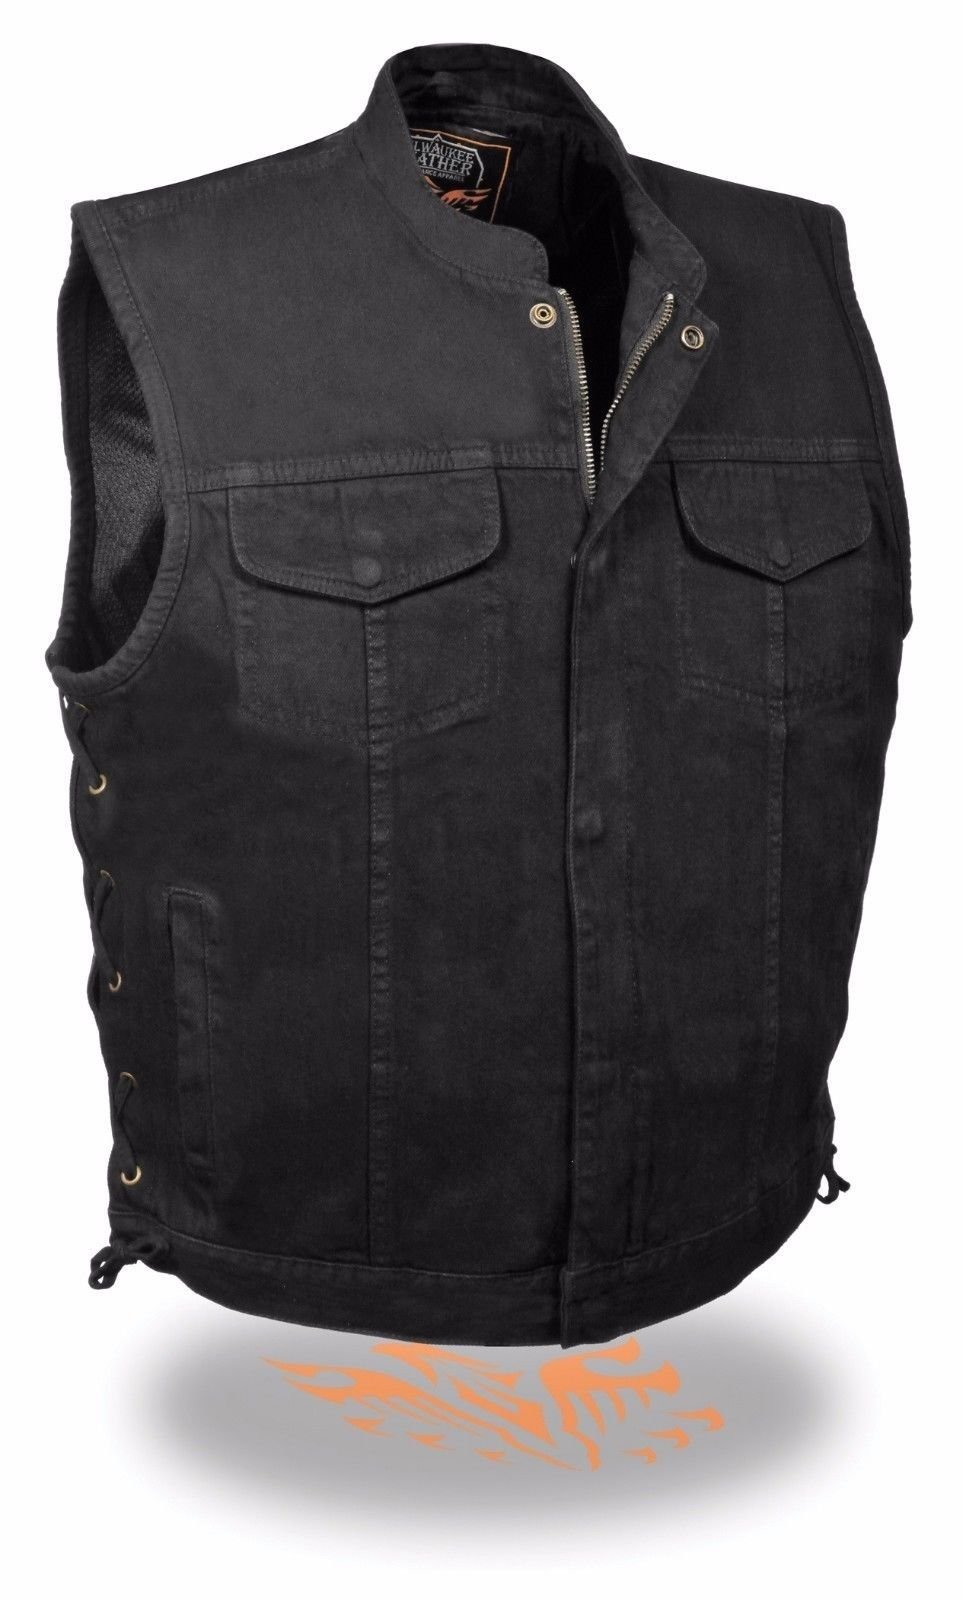 Milwaukee MEN'S MOTORCYCLE RIDING SON OF ANARCHY BLACK DENIM VEST W/GUN POCKETS SIDE LACES (3XL Regular)